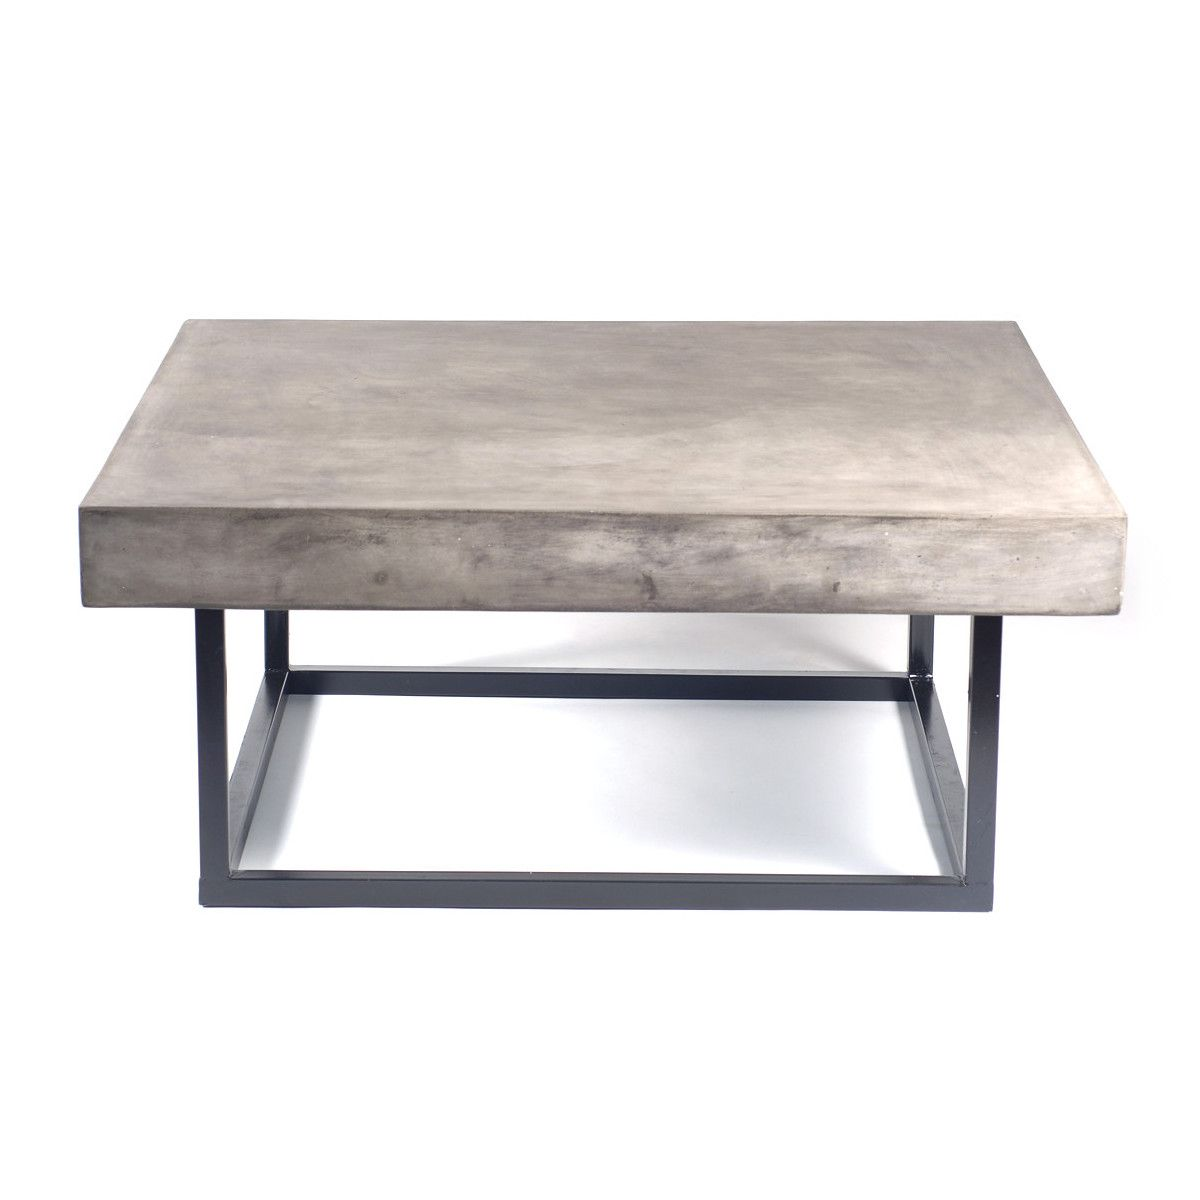 Mia concrete coffee table 1 for sv back patio 41 square for Concrete coffee table